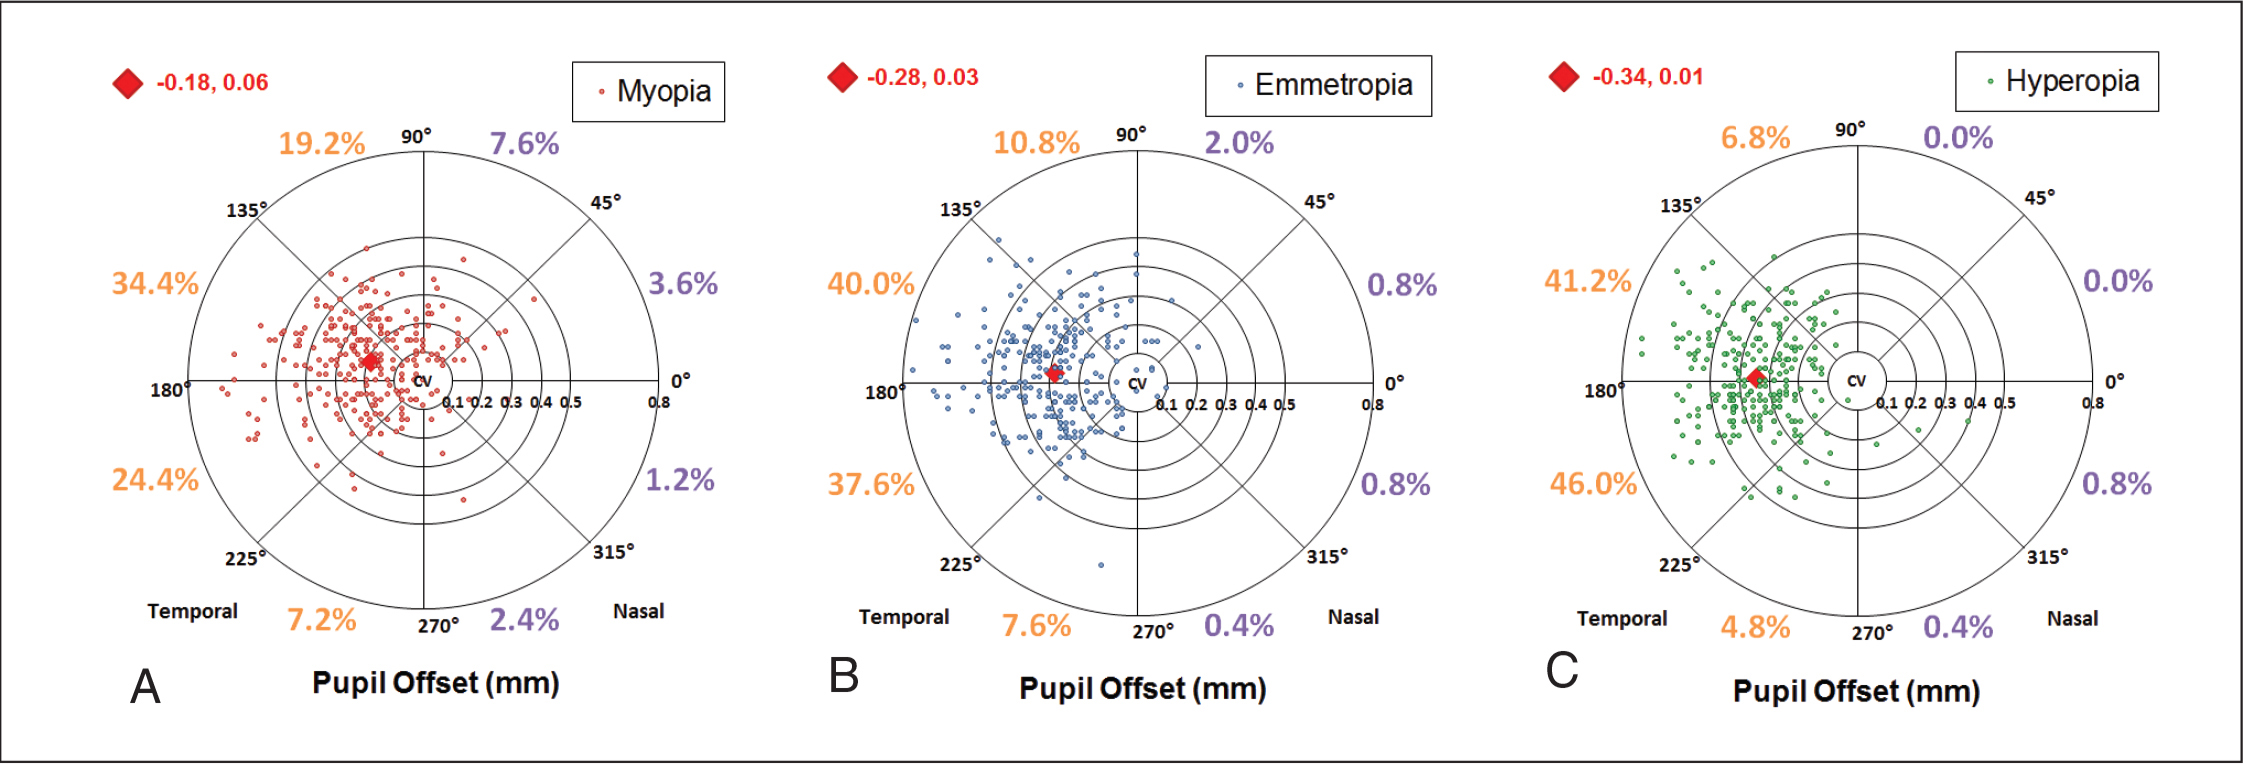 Scatter plot showing the pupil center (colored data points) in comparison to the corneal vertex (geographic center) for the (A) myopic, (B) emmetropic, and (C) hyperopic groups. The rings represent 0.1-mm intervals. The red diamond shows the vector mean of the population and the X, Y coordinates of the mean are displayed in red.